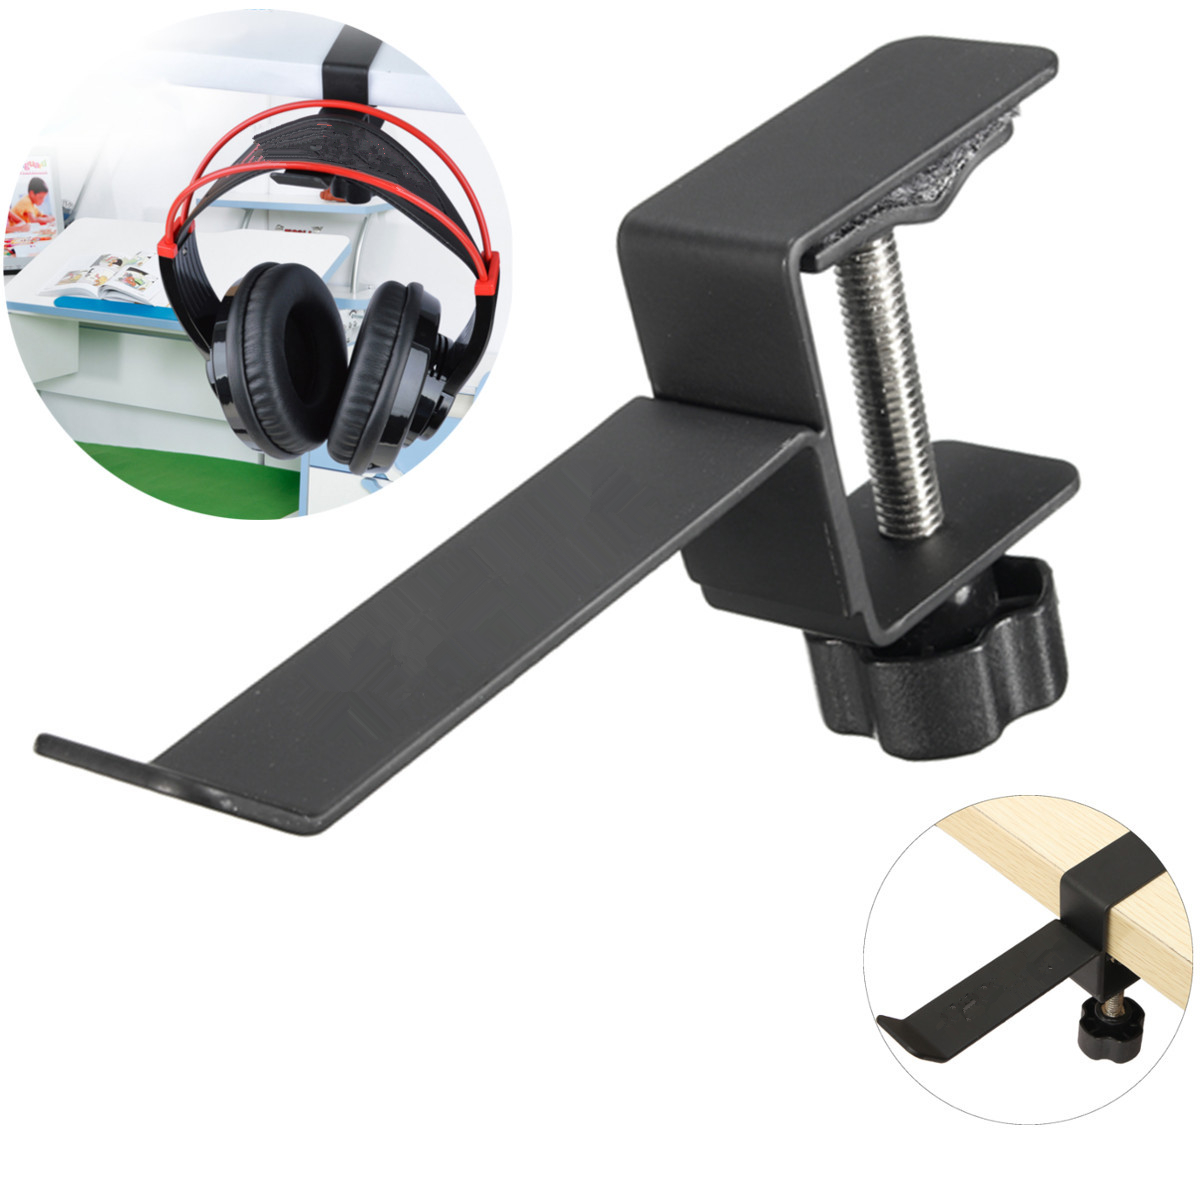 Steel Universal Headphone Destop Mount Holder Hanger Hook Headset Shelf Rack Earphones Stand Gaming Studio DJ With Screws